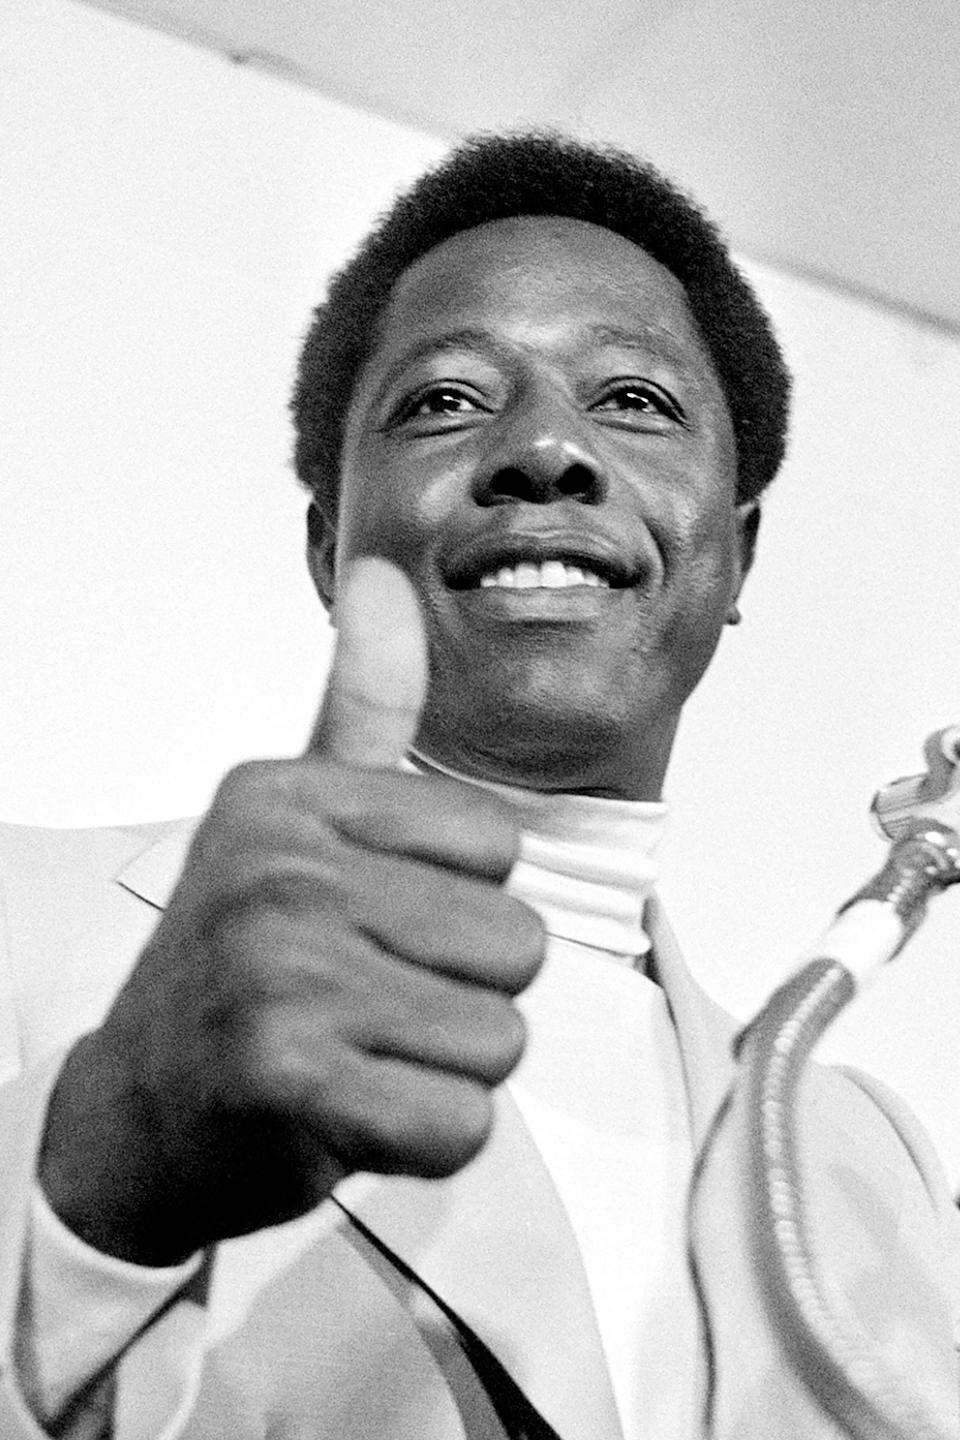 FILE - Atlanta Braves' Hank Aaron gives the thumbs-up sign to reporters indicating he will play in the season opener against the Cincinnati Reds at Riverfront Stadium in Cincinnati, in this April 4, 1974, file photo. Hank Aaron, who endured racist threats with stoic dignity during his pursuit of Babe Ruth's home run record and gracefully left his mark as one of baseball's greatest all-around players, died Friday. He was 86. The Atlanta Braves, Aaron's longtime team, said he died peacefully in his sleep. No cause was given.(AP Photo/File)